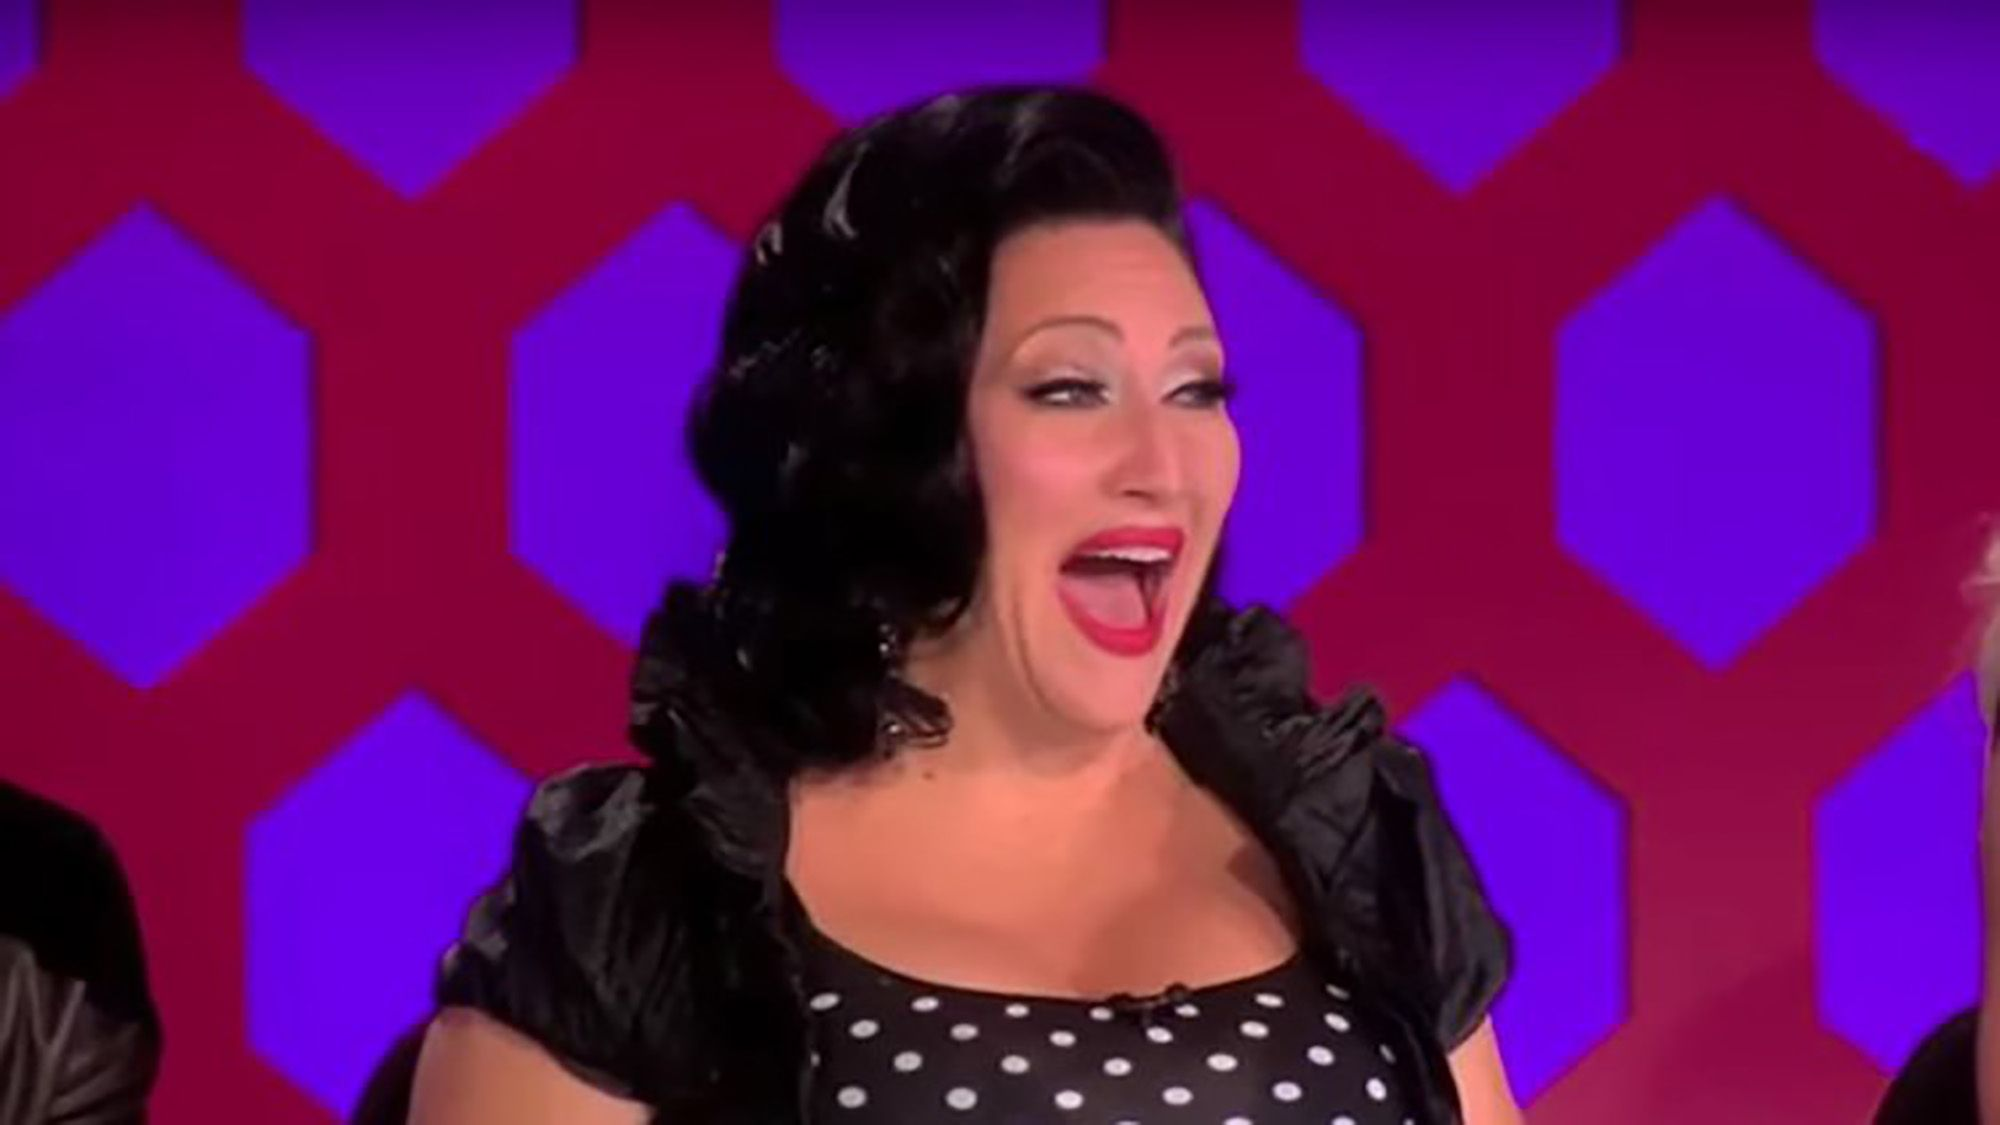 Strictly Come Dancing's Michelle Visage reveals her favourite moment from RuPaul's Drag Race